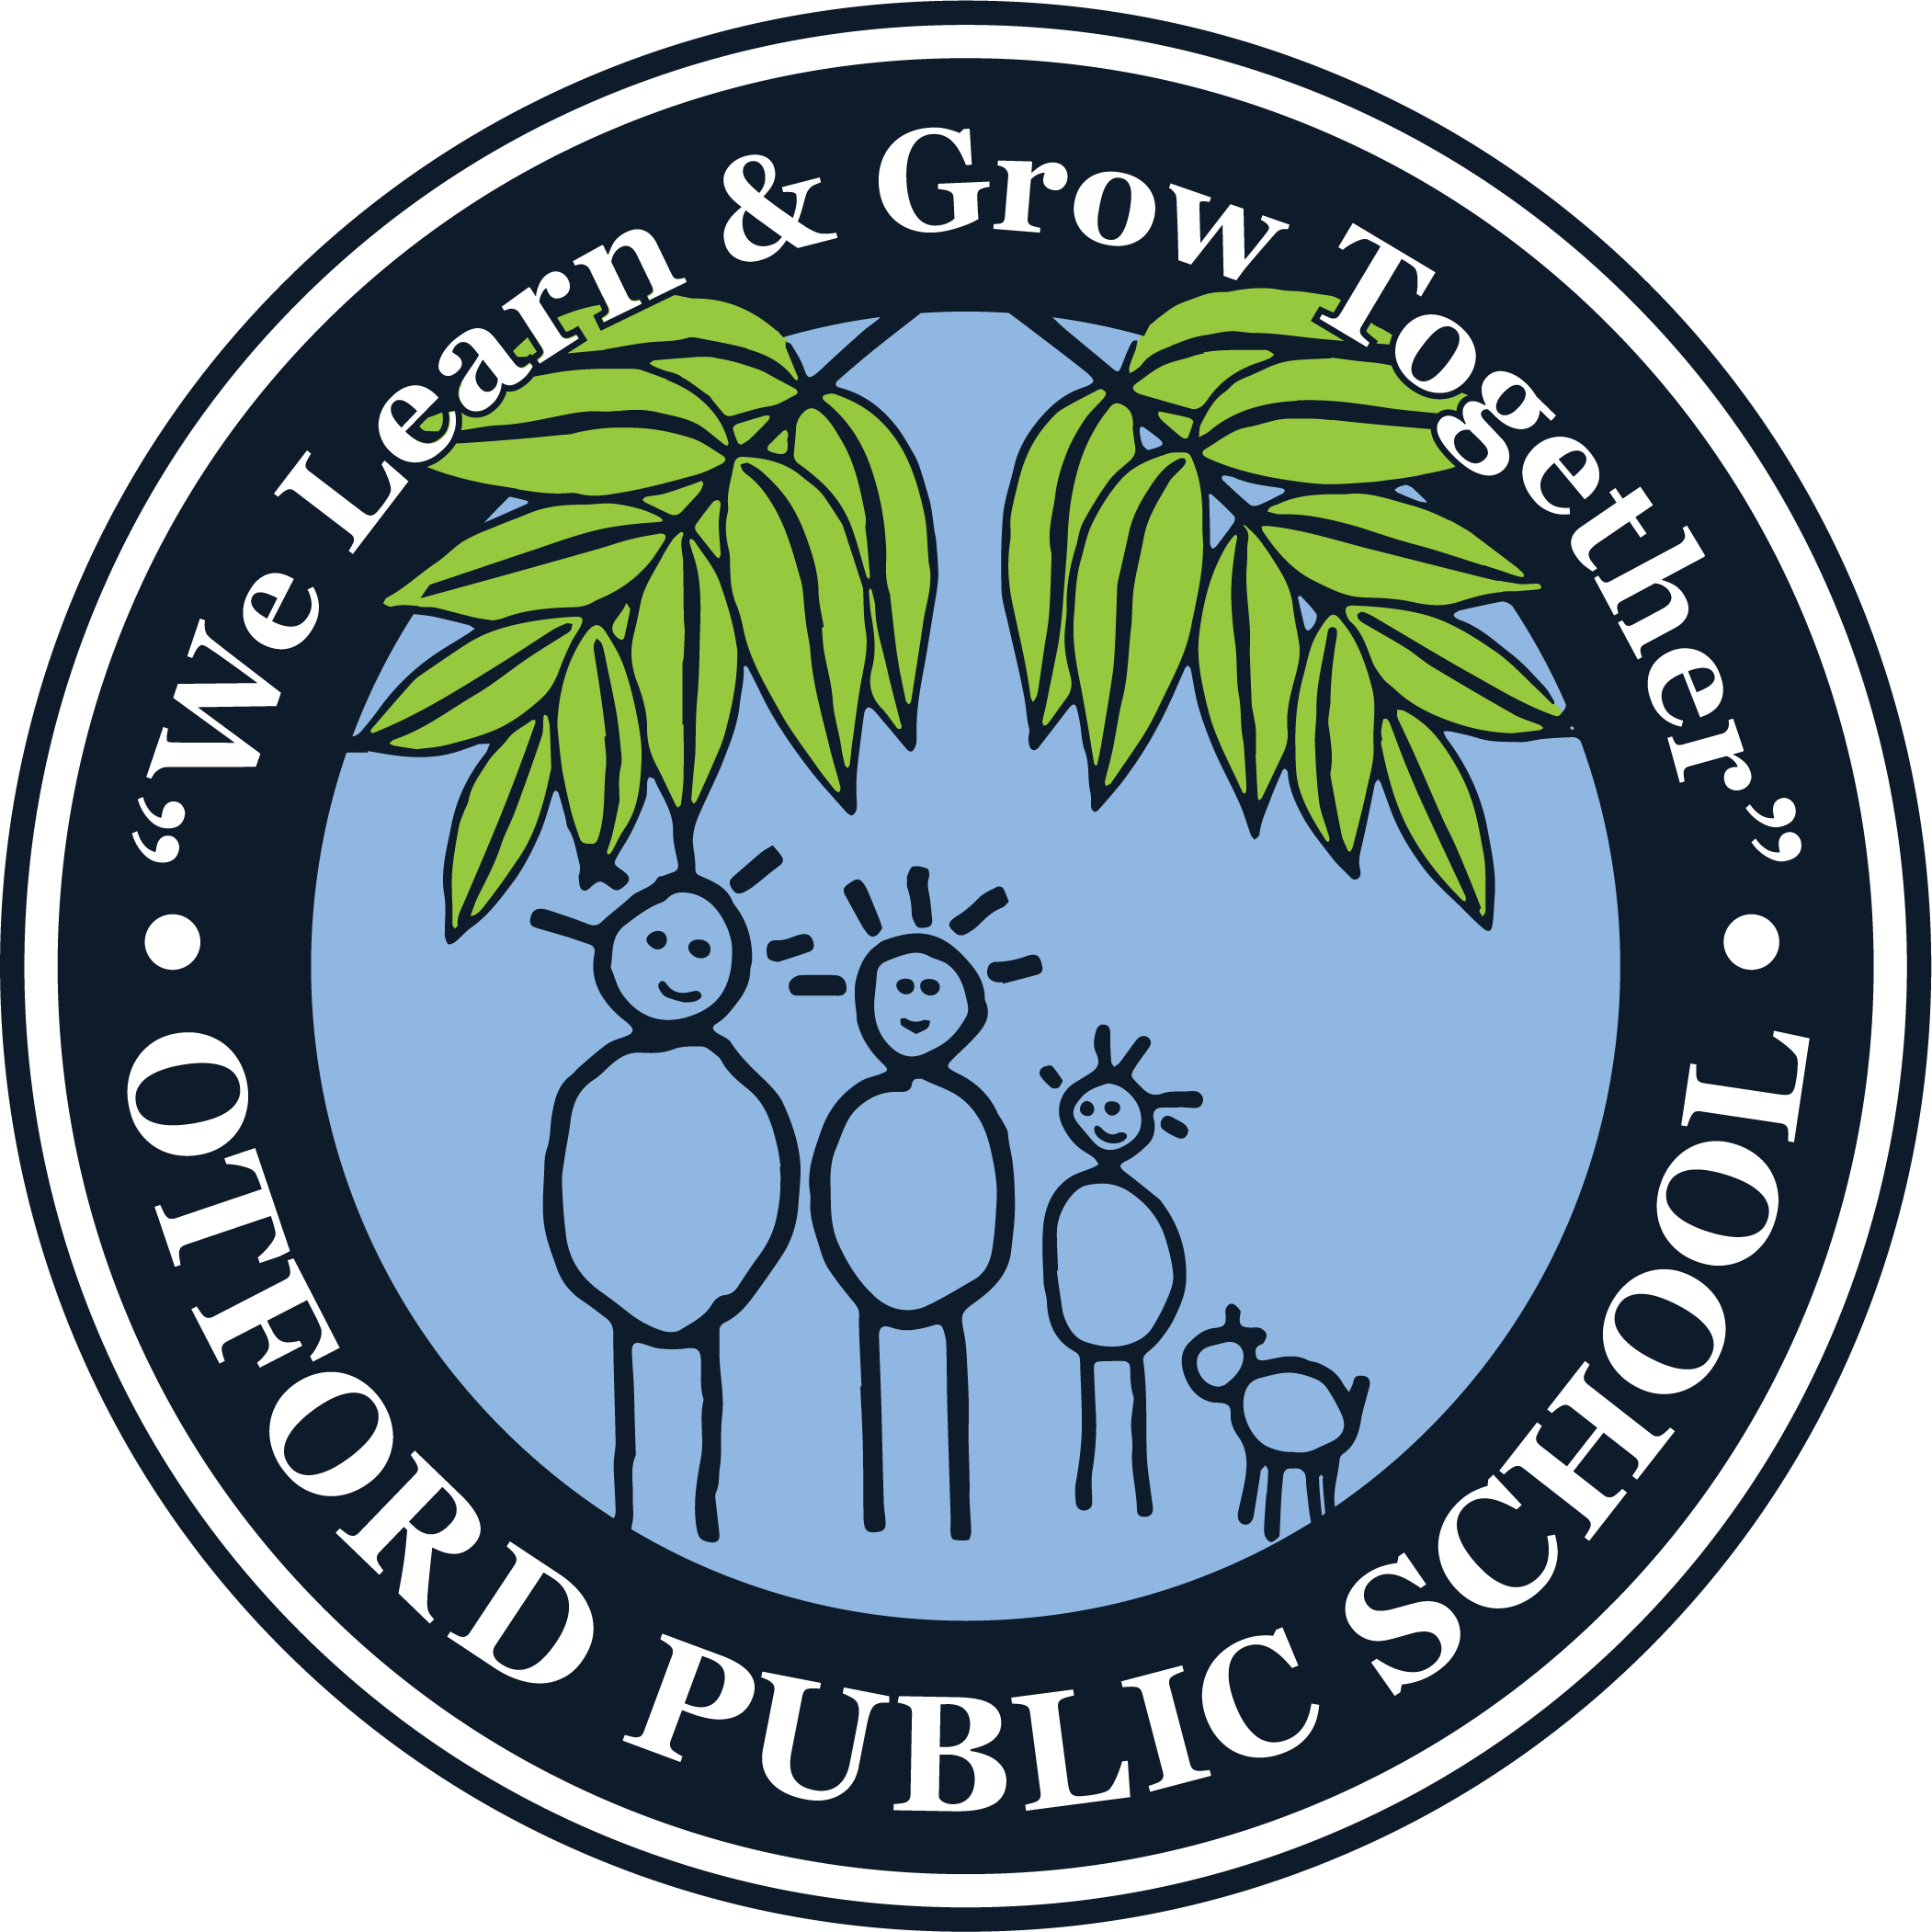 Otford Public School logo